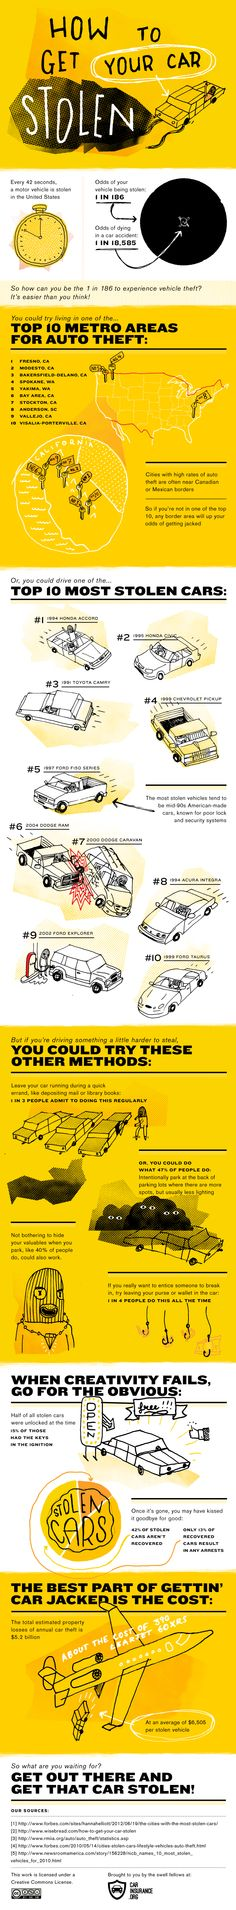 How To Get Your Car Stolen[INFOGRAPHIC] #car